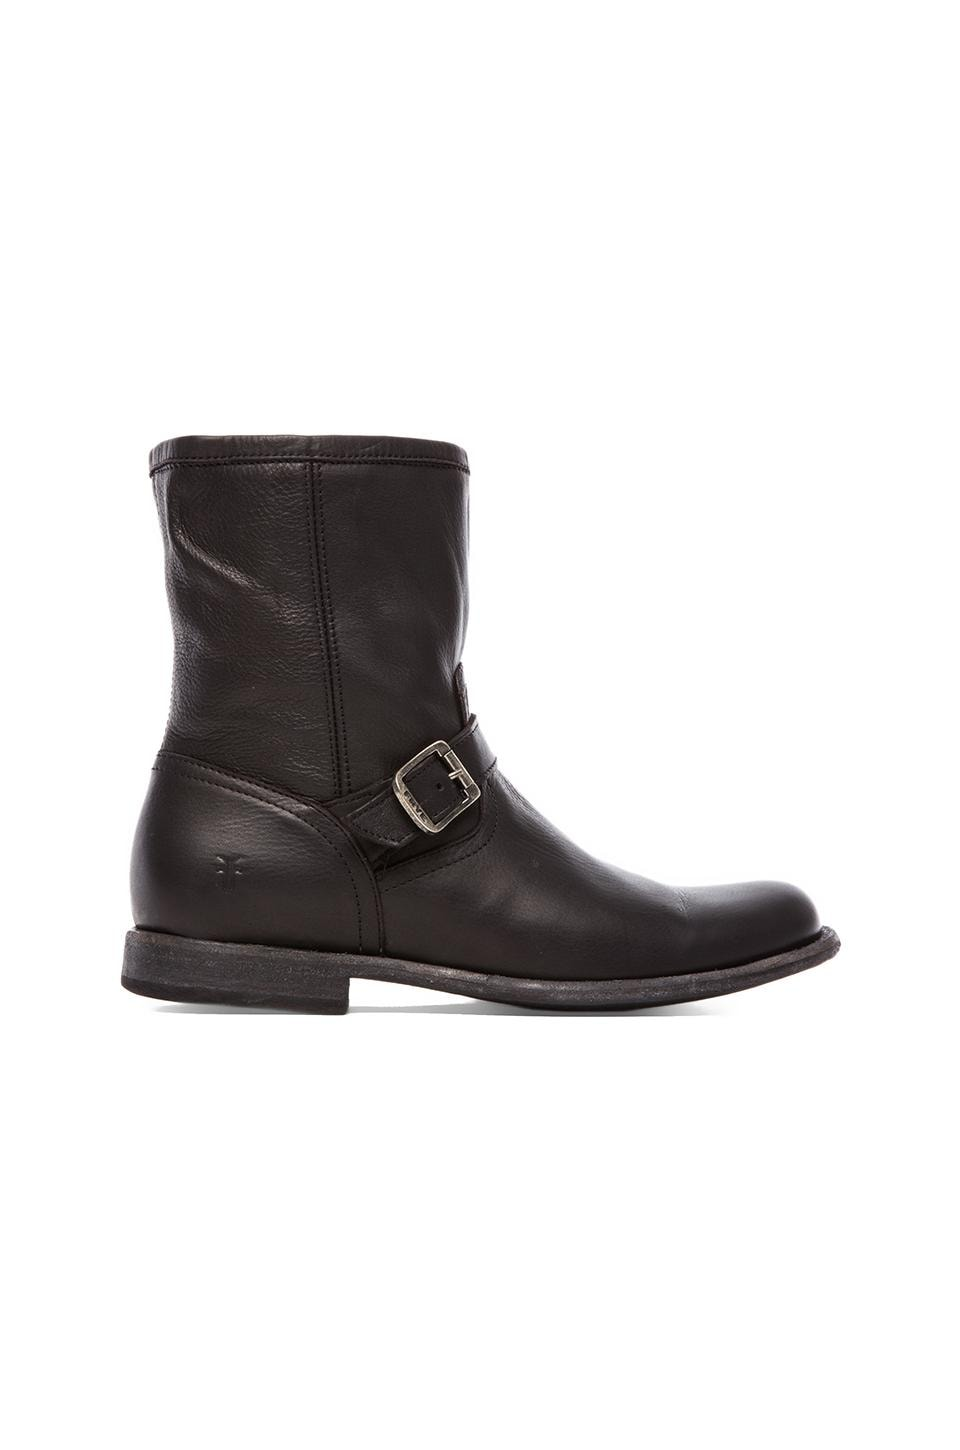 Frye Phillip Inside Zip Boot in Black